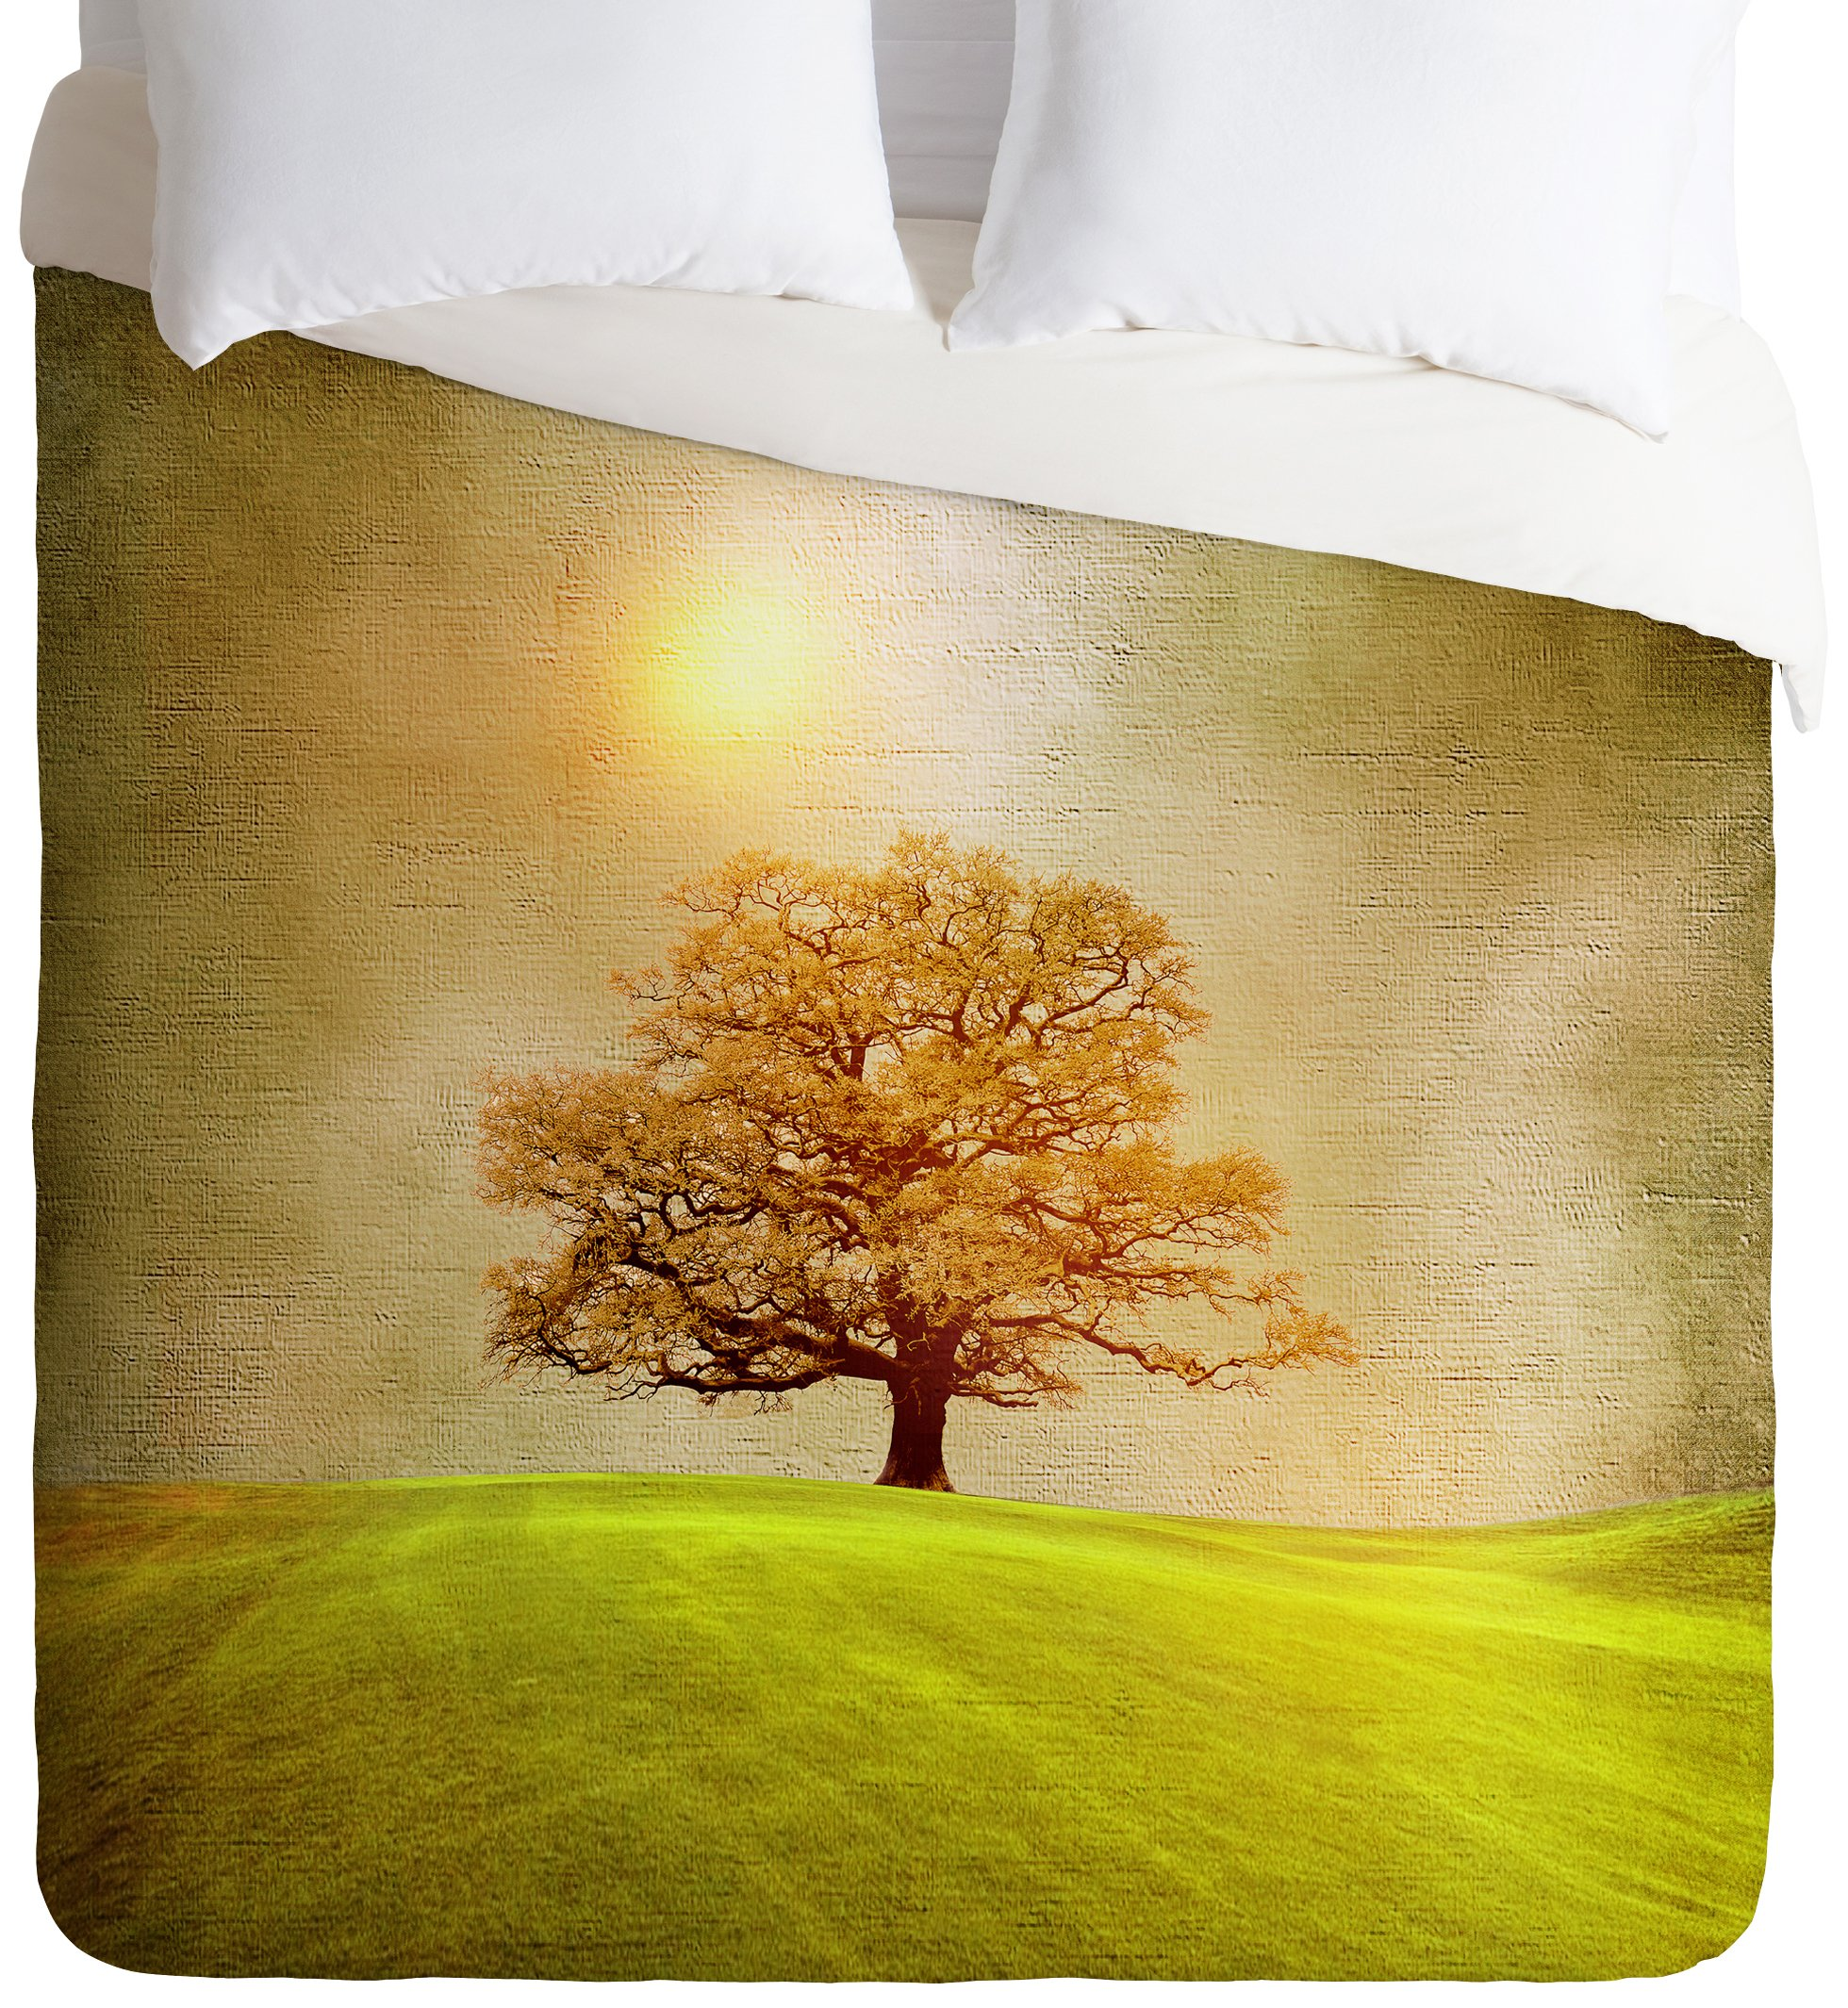 Deny Designs Viviana Gonzalez Energy And Love Duvet Cover, King by Deny Designs (Image #1)